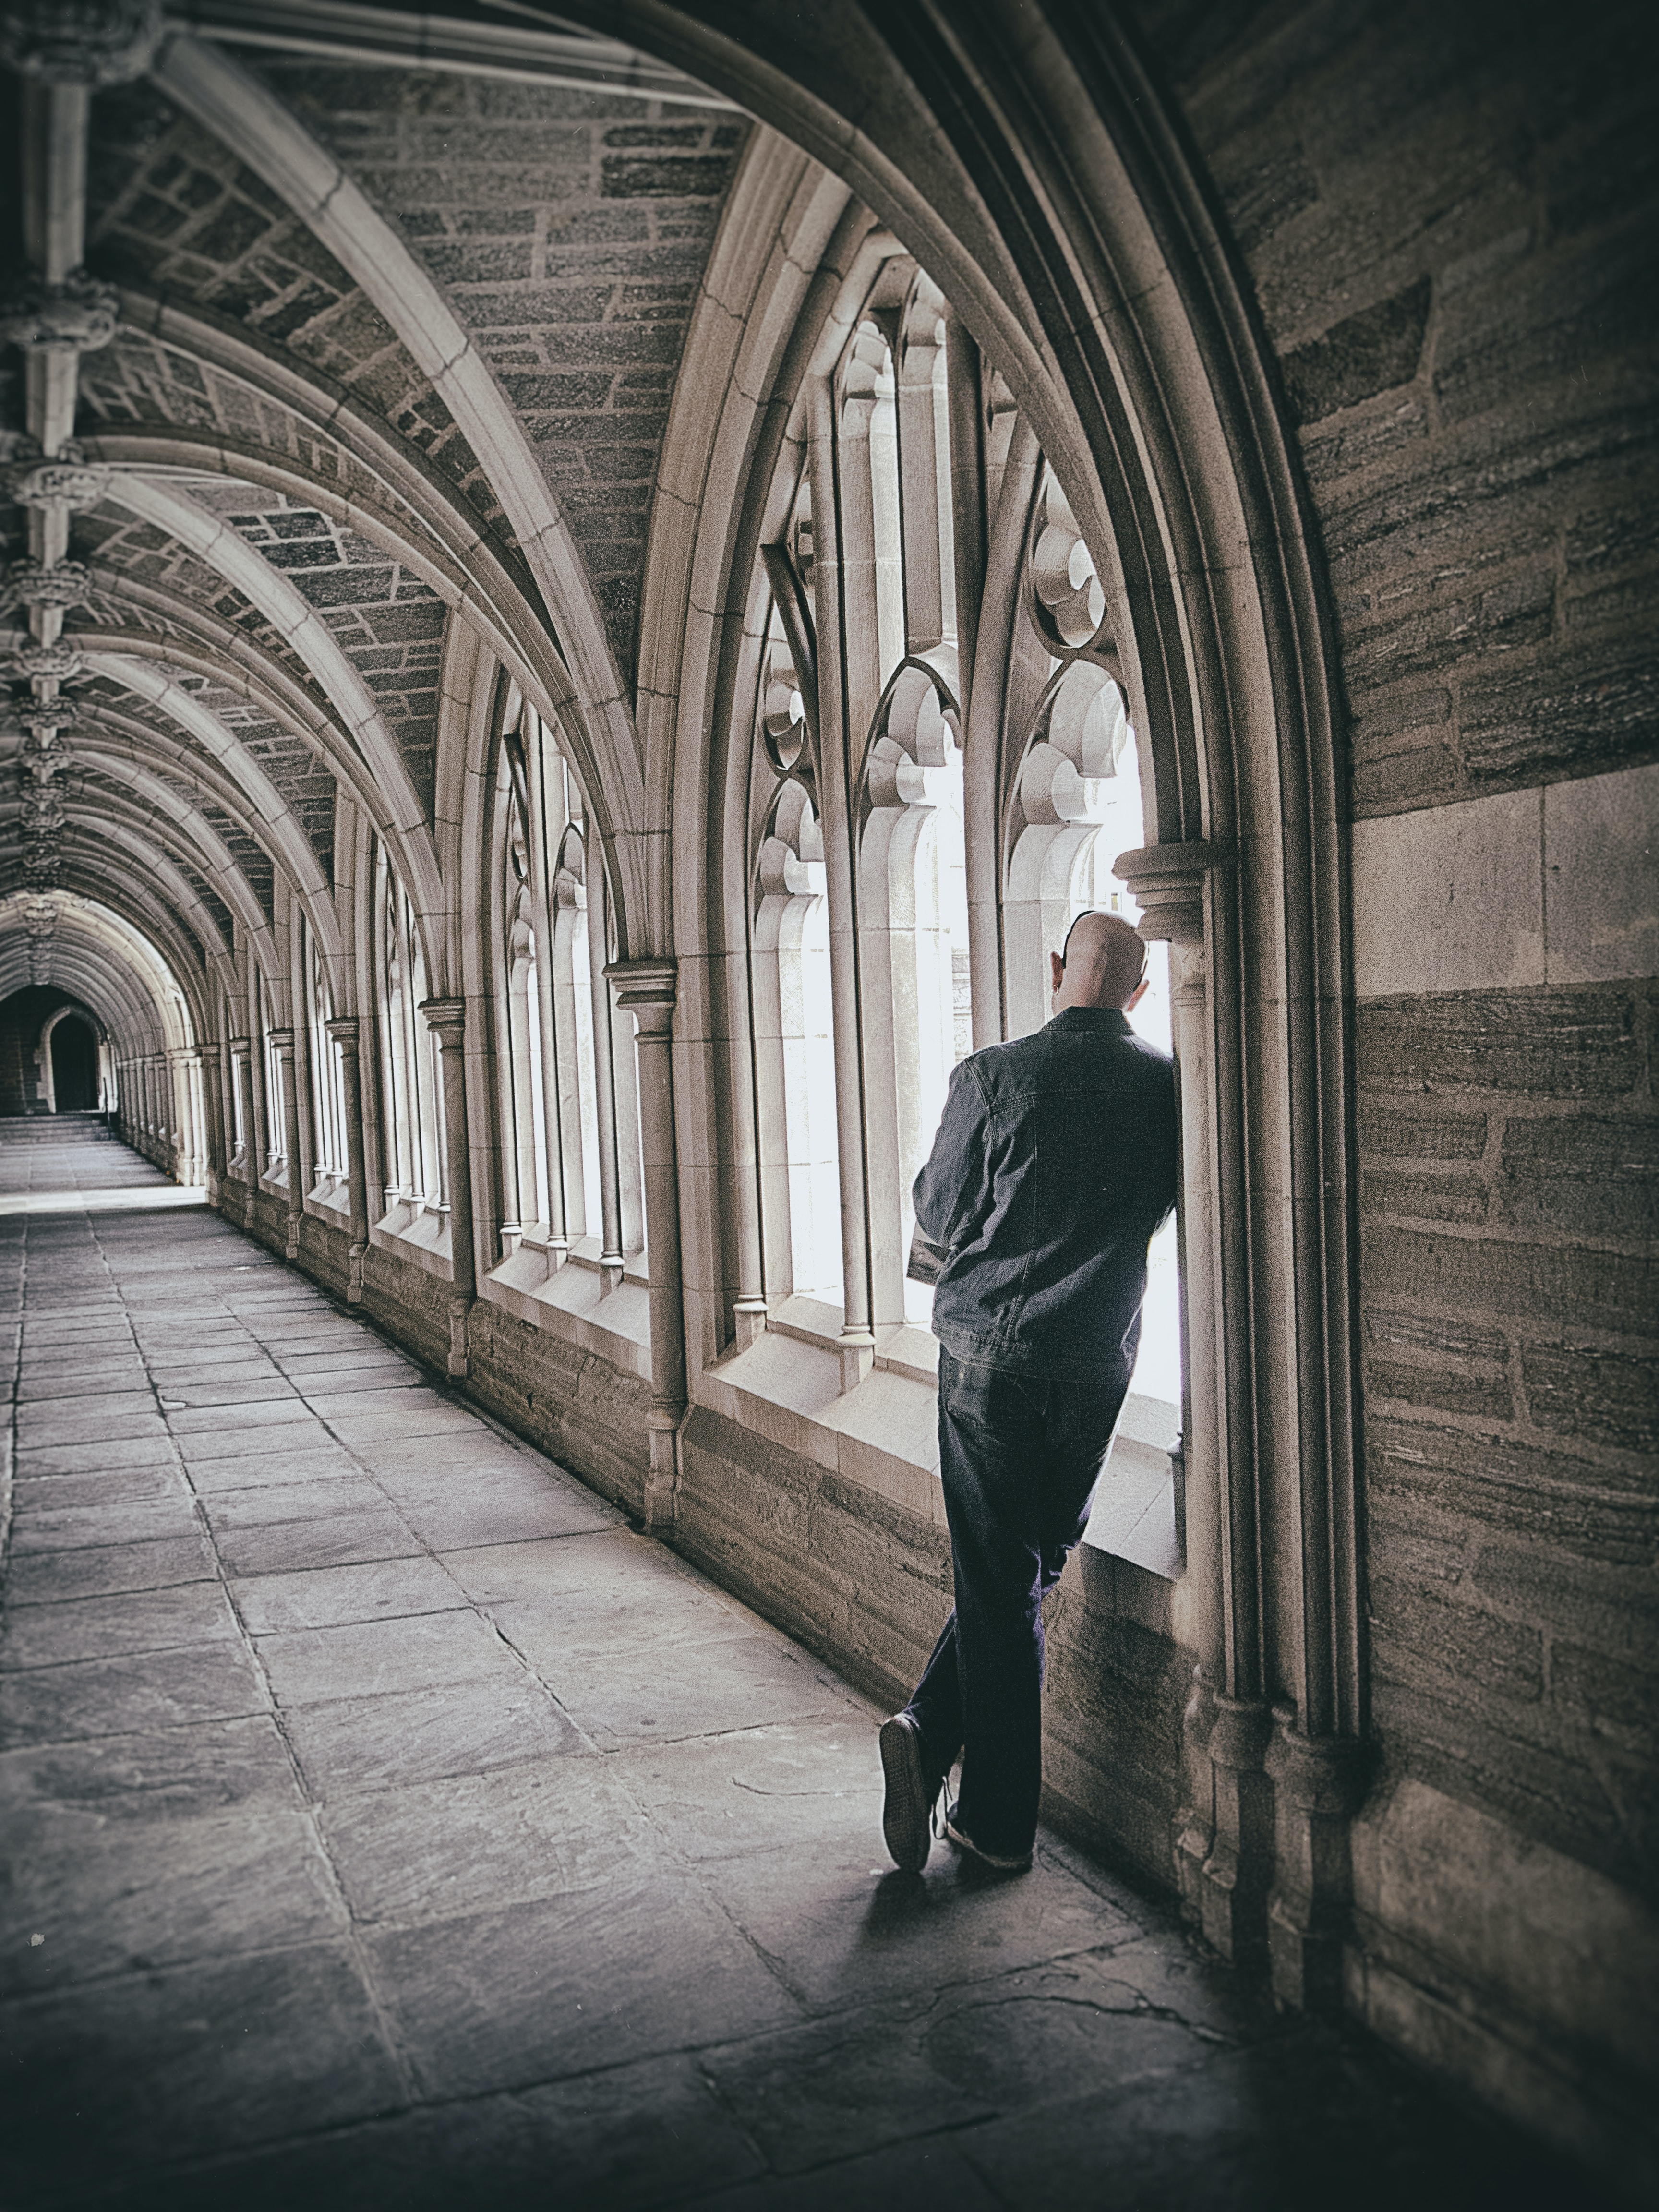 Man leaning against wall in gothic, medieval hallway architecture near windows with light coming through